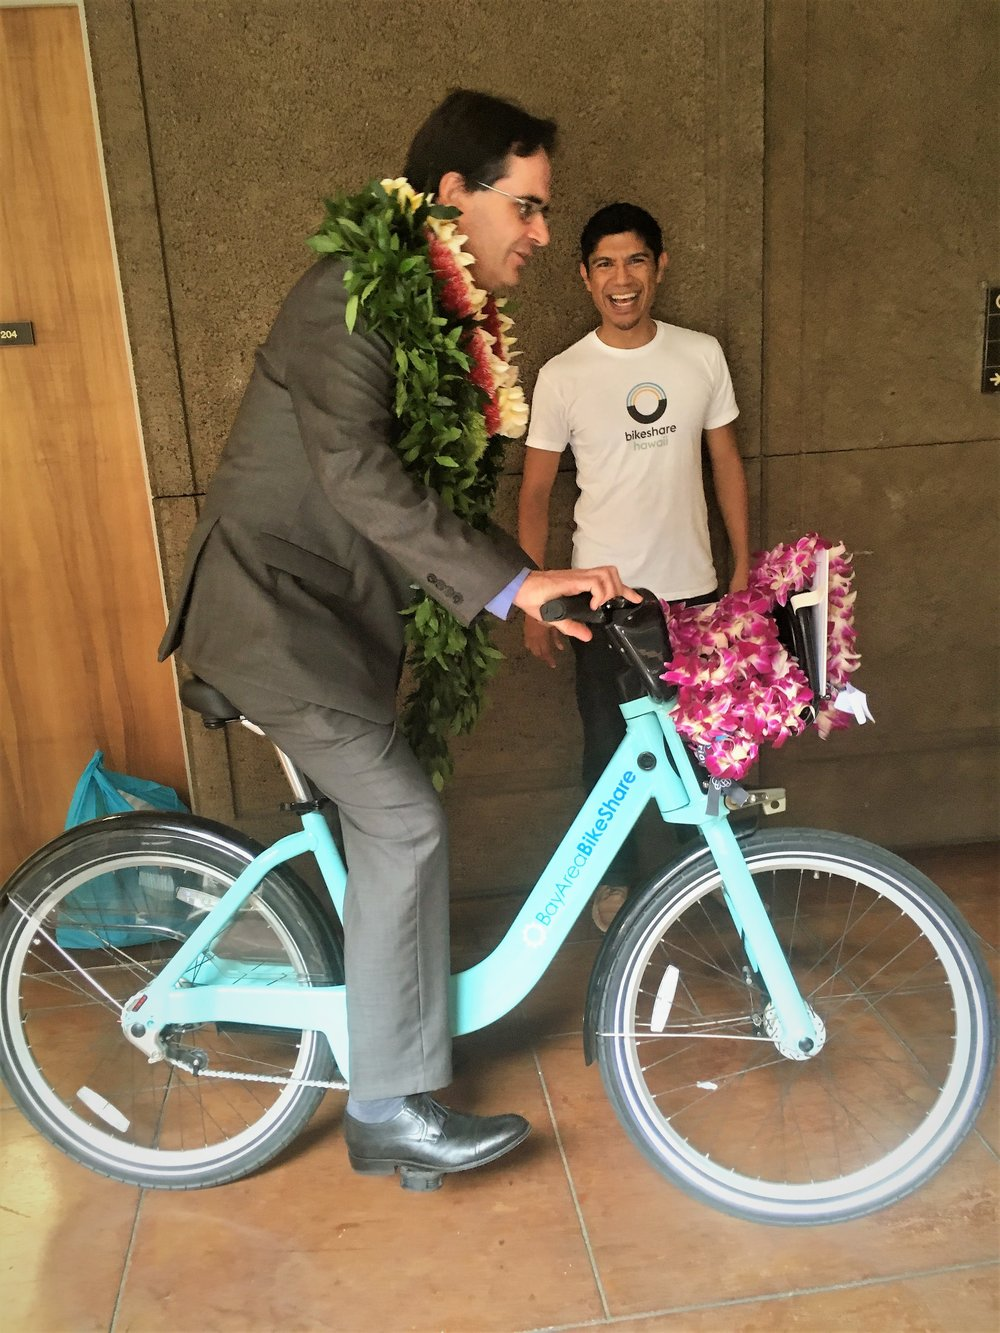 Senator Karl Rhoads of District 13 takes the bike for a spin down the hallways of the second floor